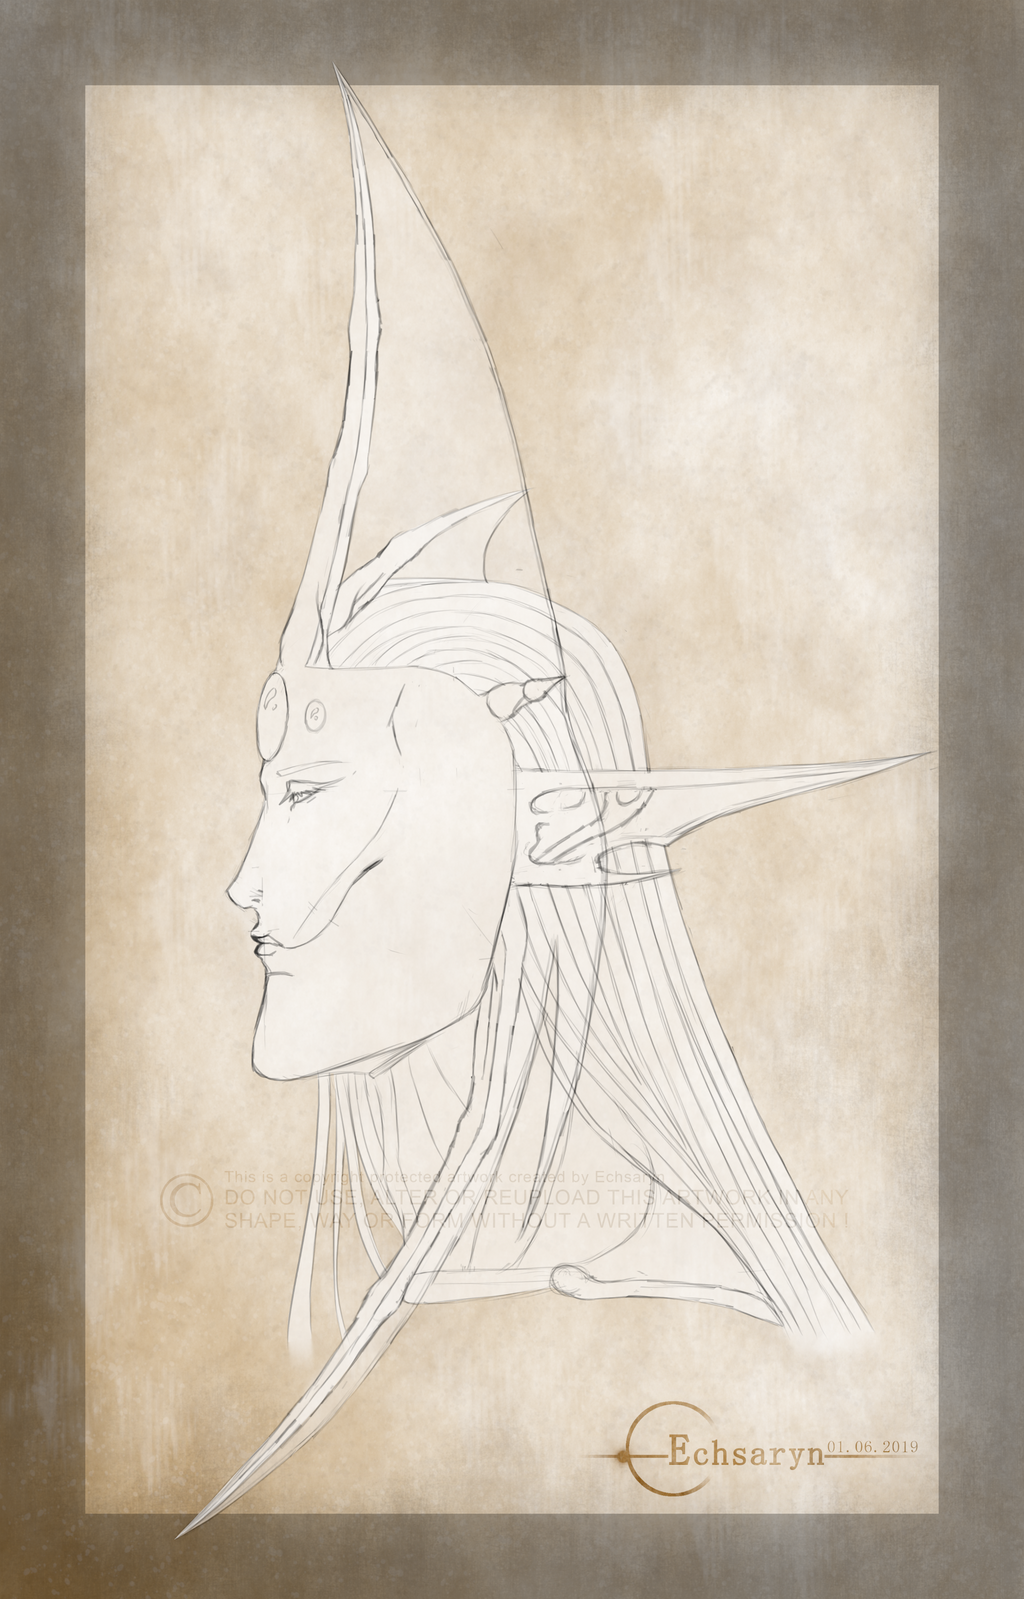 Echsaryn - Artwork - Fantasy - Sazaril - Head - 01